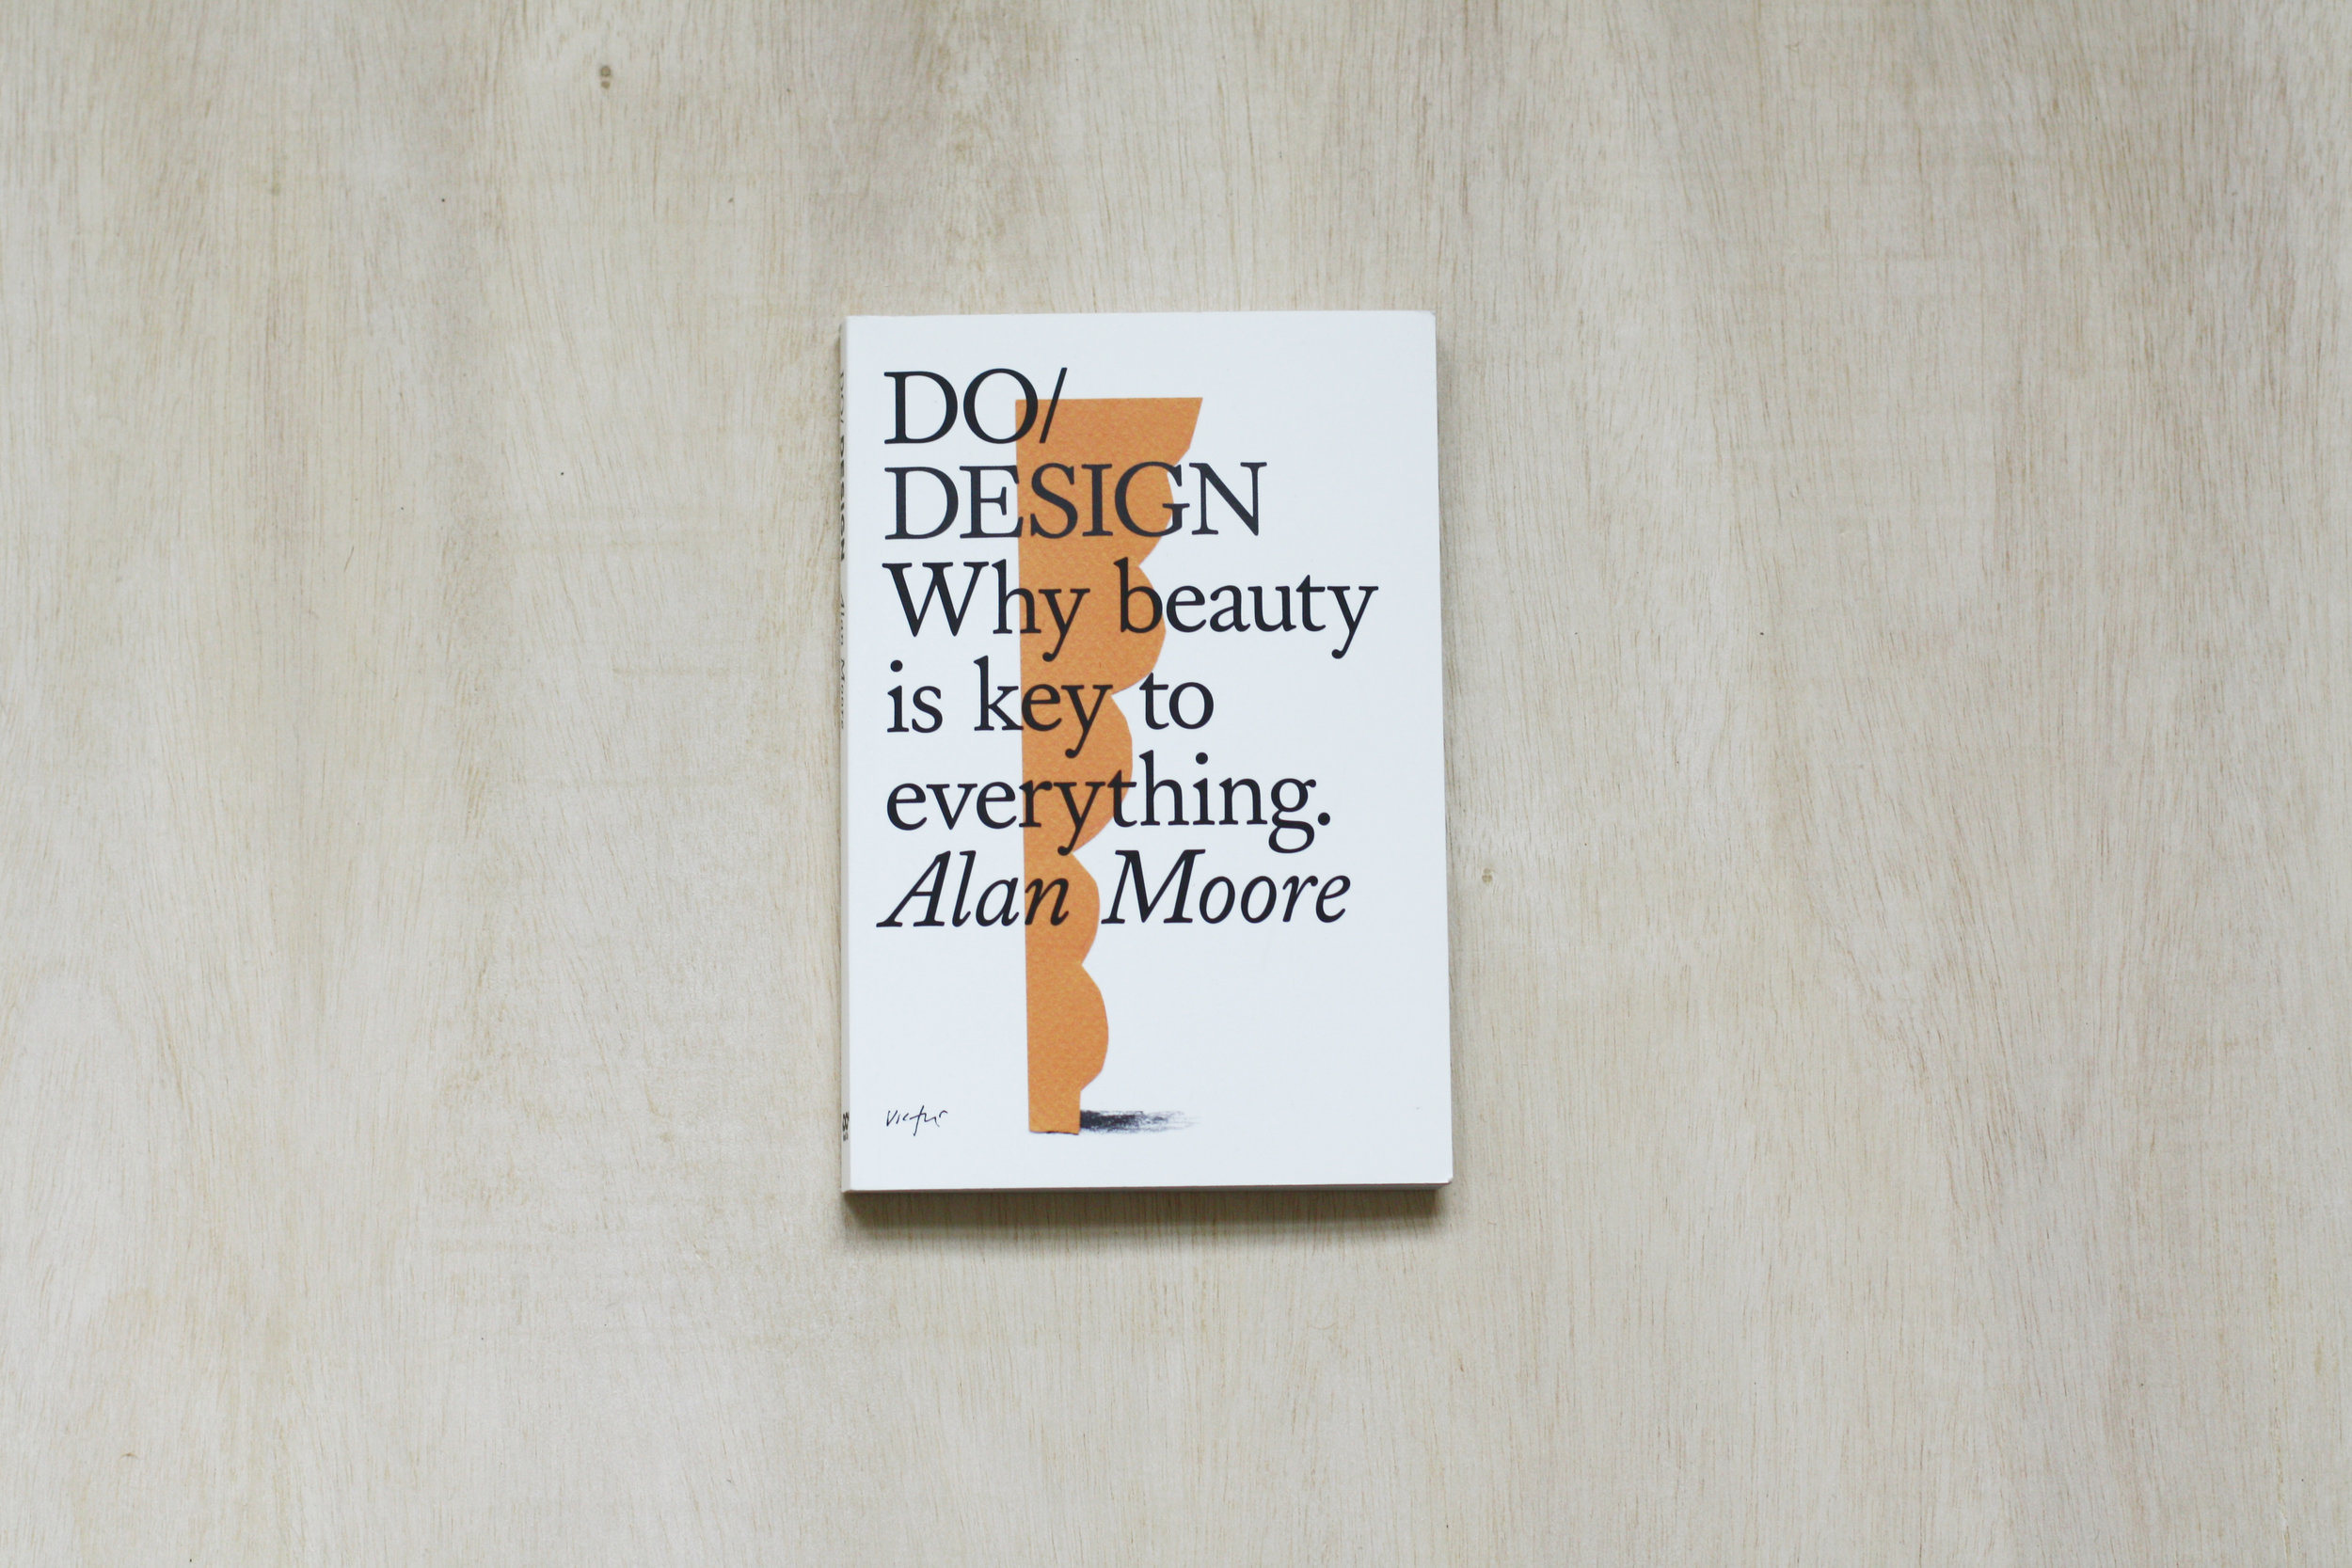 Do/Design: Why Beauty is the Key to Everything  by Alan Moore